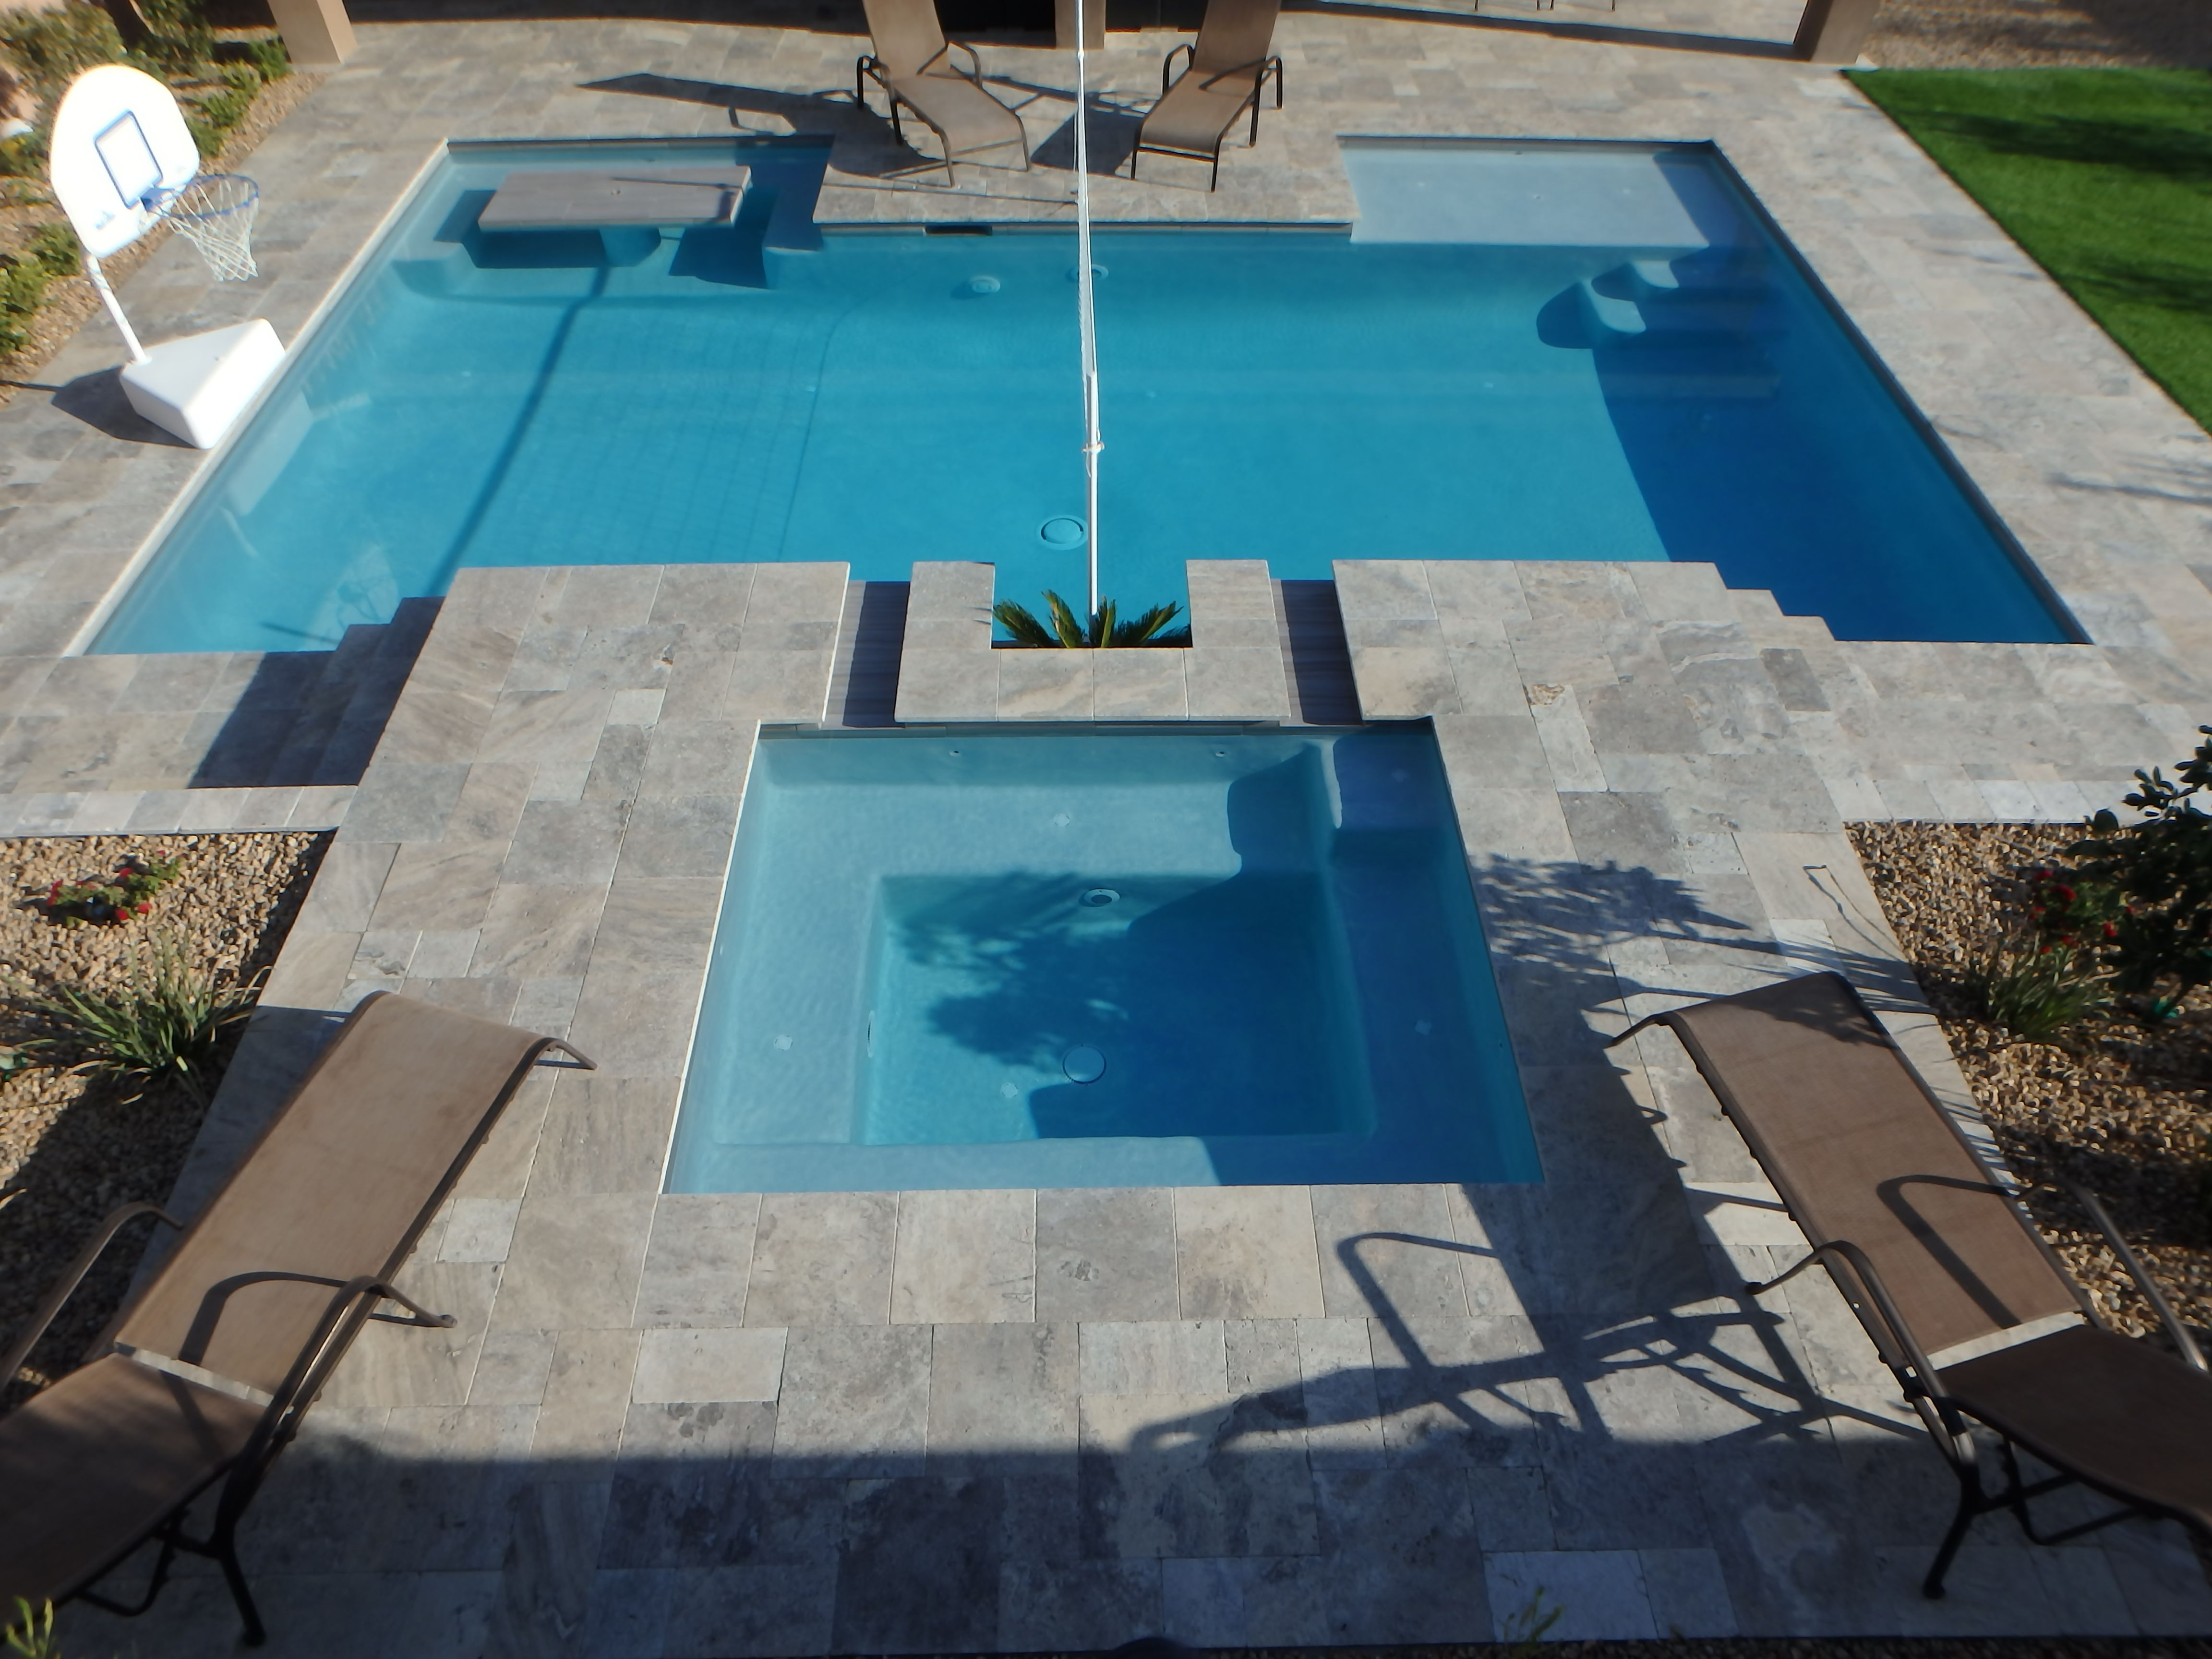 Custom Backyard Swimming Pool/spa With Sun Deck And Built In Table/bench